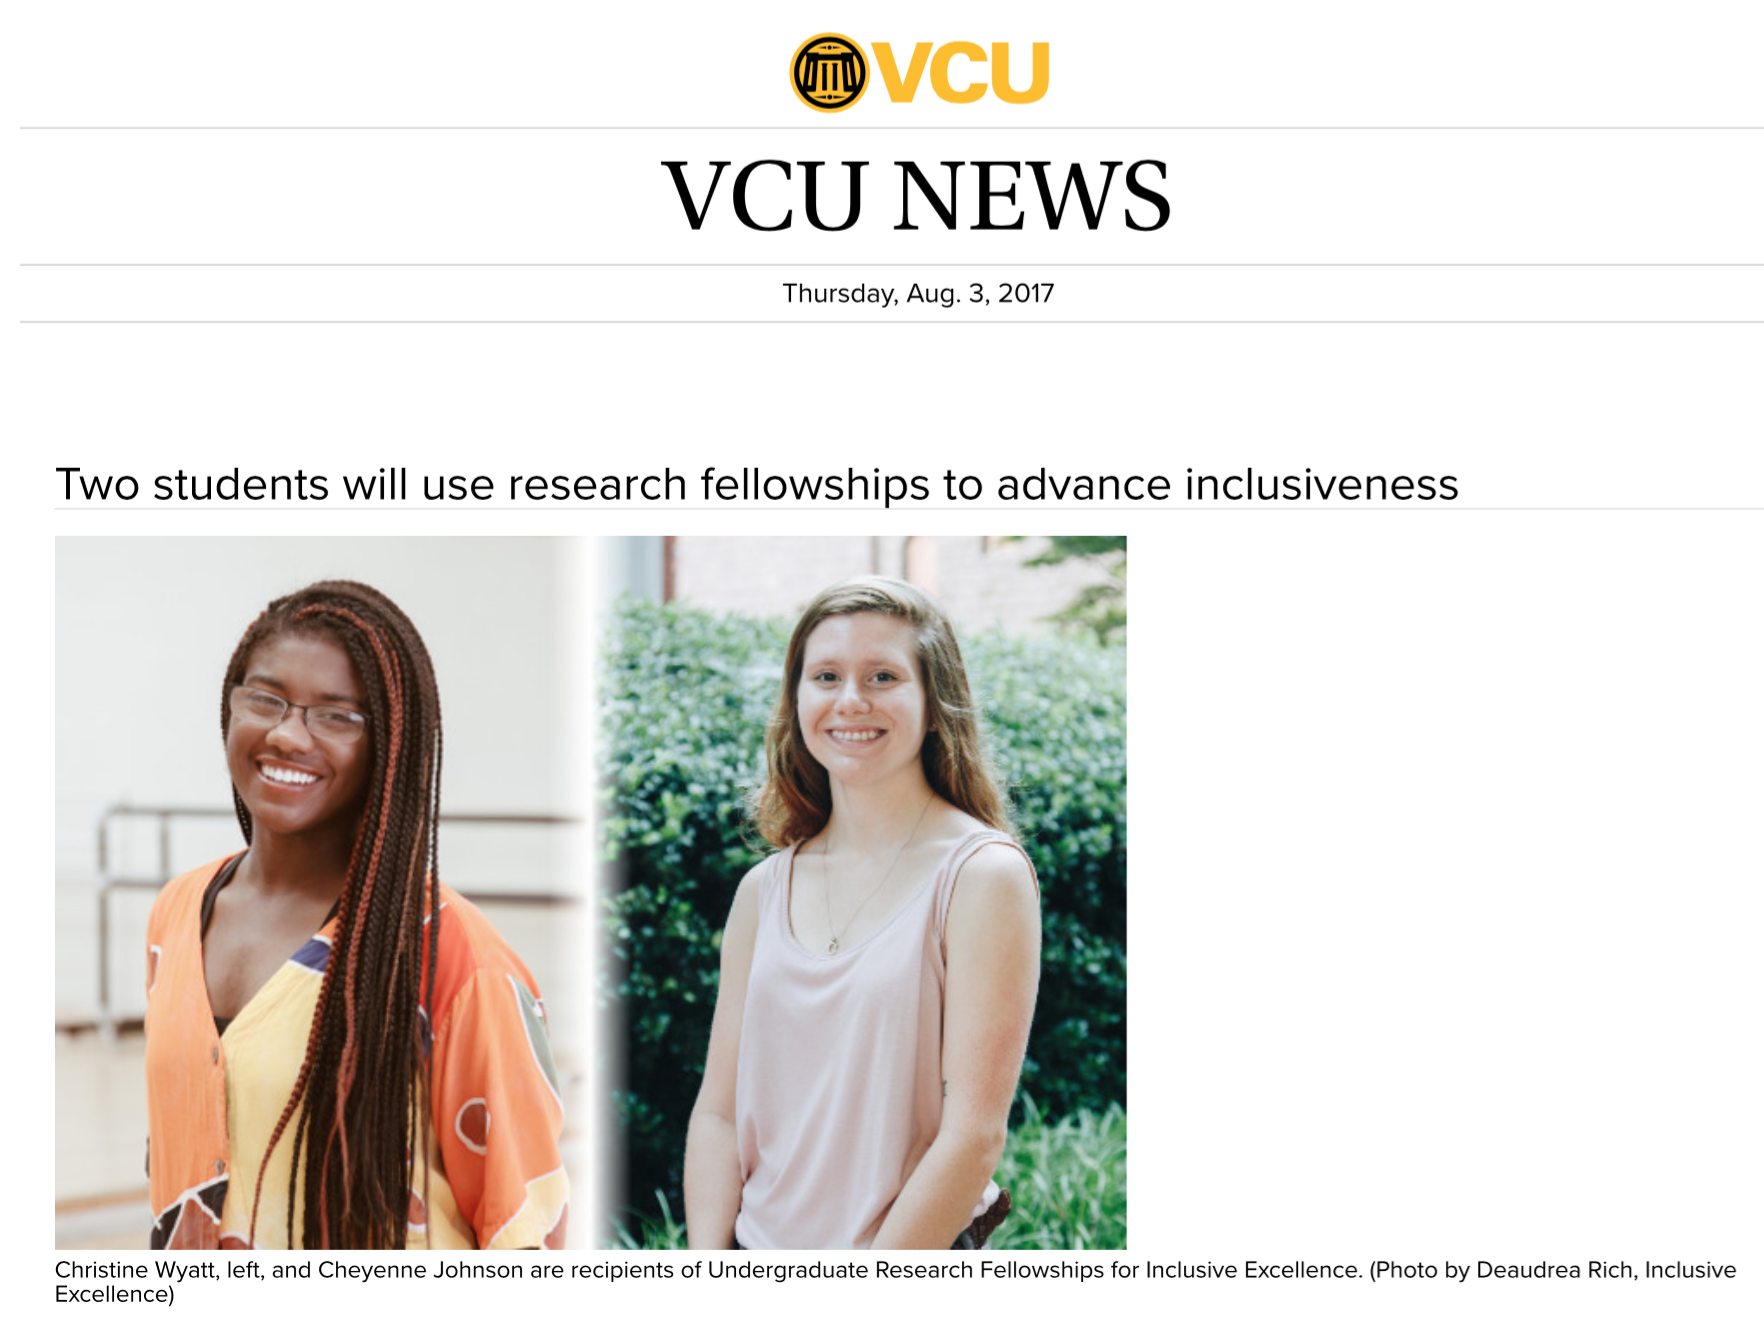 "Two students will use research fellowships to advance inclusiveness - Two Virginia Commonwealth University undergraduates, Cheyenne Johnson and Christine Wyatt, are recipients of Undergraduate Research Fellowships for Inclusive Excellence for 2017.Each fellow receives a $1,500 award, while their faculty mentors receive a $500 award. Both Johnson and Wyatt will present their work at the Spring 2018 Poster Day during the Undergraduate Research Symposium. This is the third year that the Division for Inclusive Excellence has sponsored an award.For Johnson, a rising junior majoring in psychology and minoring in statistics in the College of Humanities and Sciences, that means using existing data to explore how inequality can affect access to mental health care.Her proposal, ""The Role of Inequality on Health Care Seeking,"" was inspired by taking the course, ""Sex and Sexuality in the U.S."" last fall. The course linked contemporary issues about sexual identity, reproductive rights and sexual violence to ""historical legacies of power and control.""Click image on left for more."